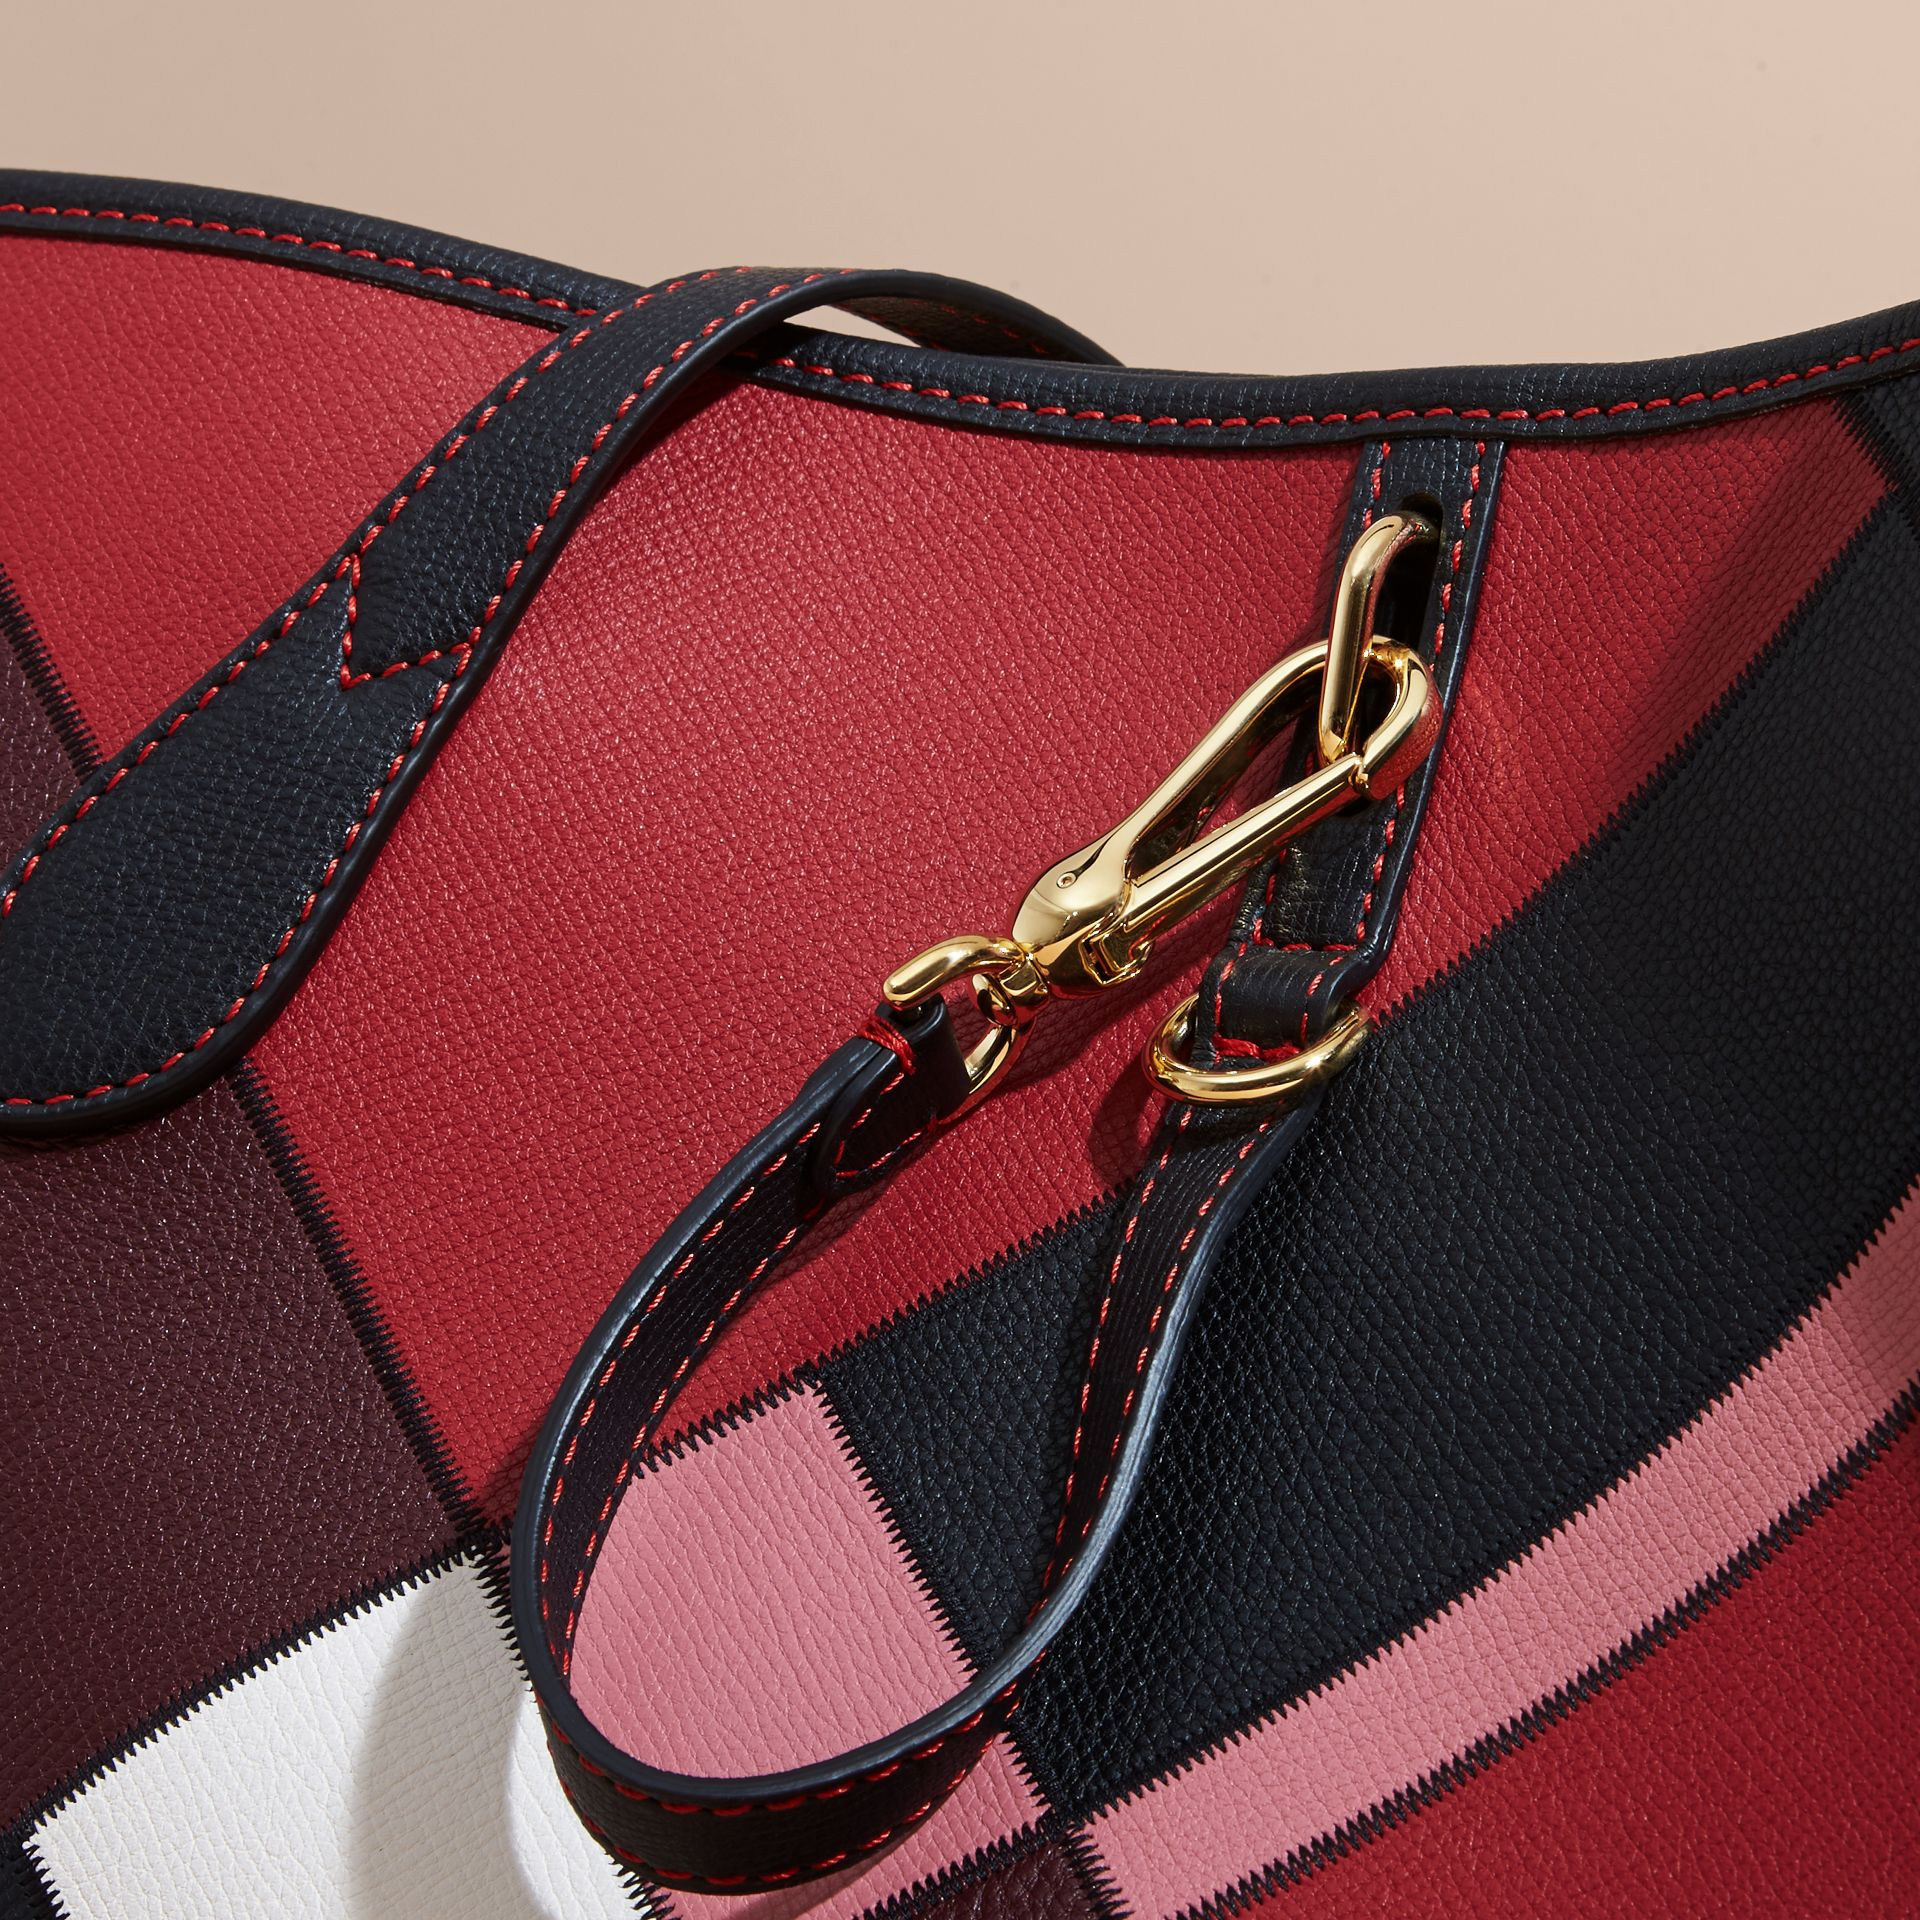 Medium Patchwork Grainy Leather Tote Bag in Pink - Women | Burberry - gallery image 2